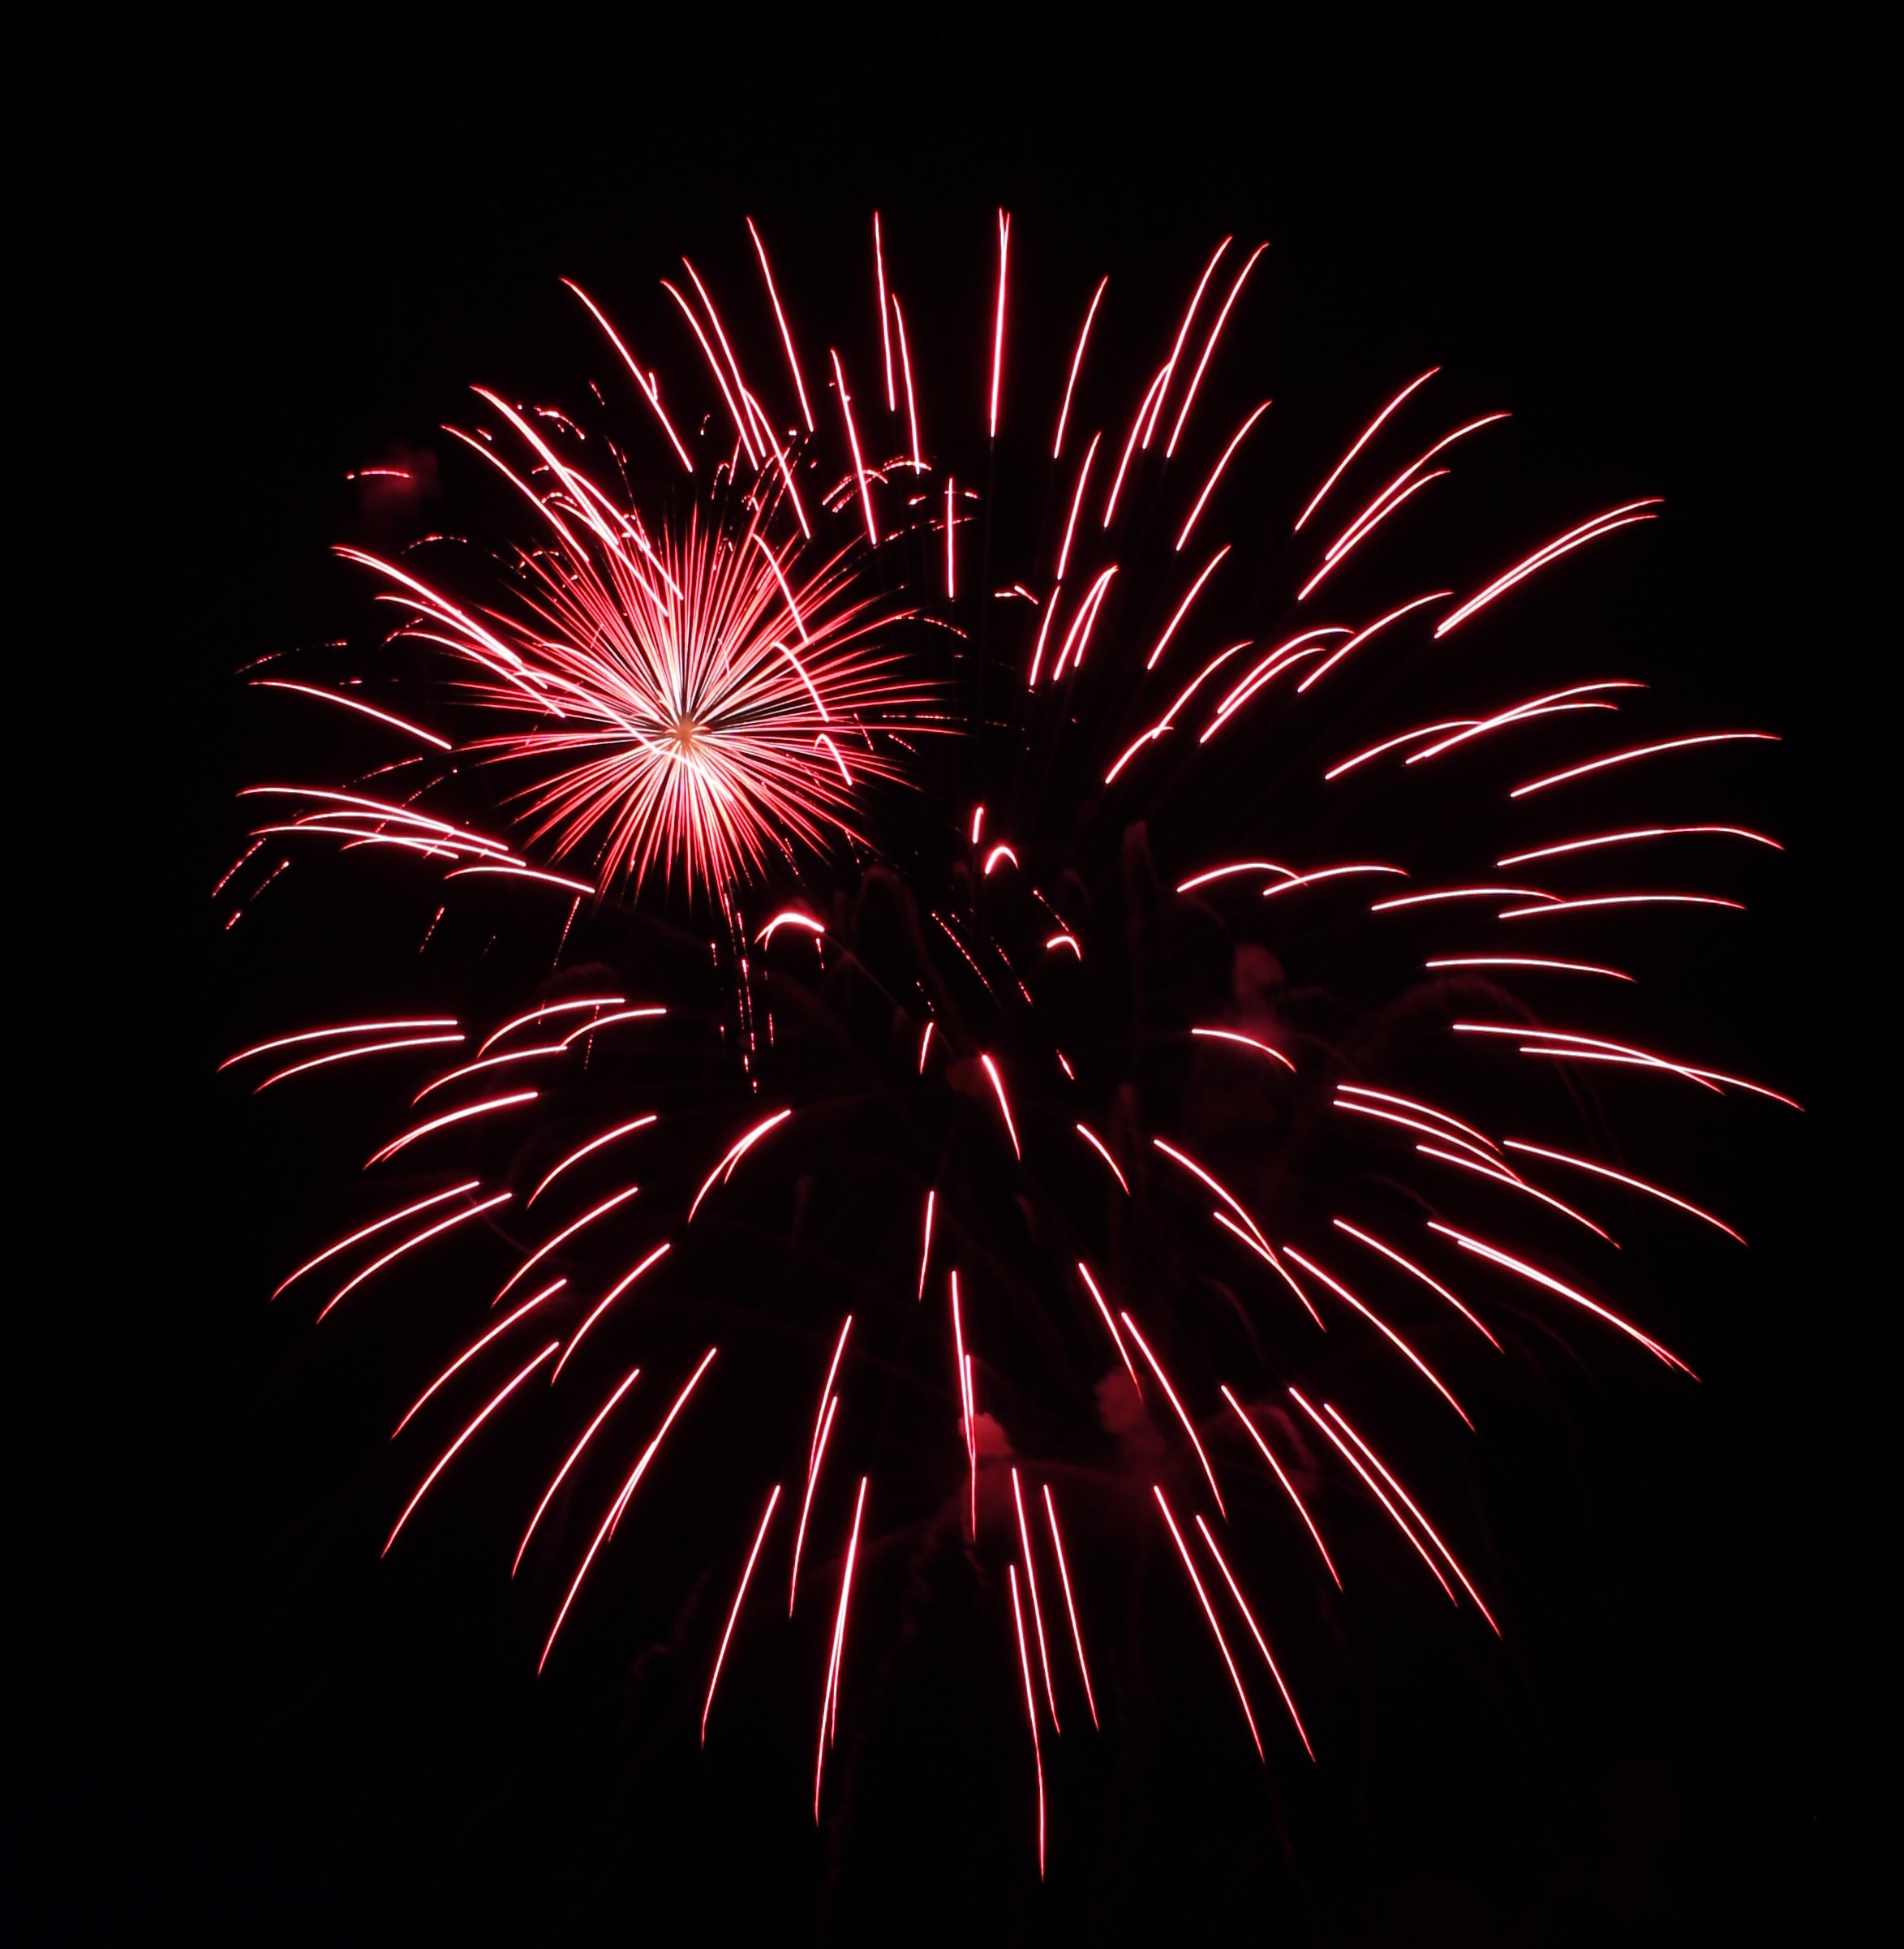 Red fireworks exploding in the night sky